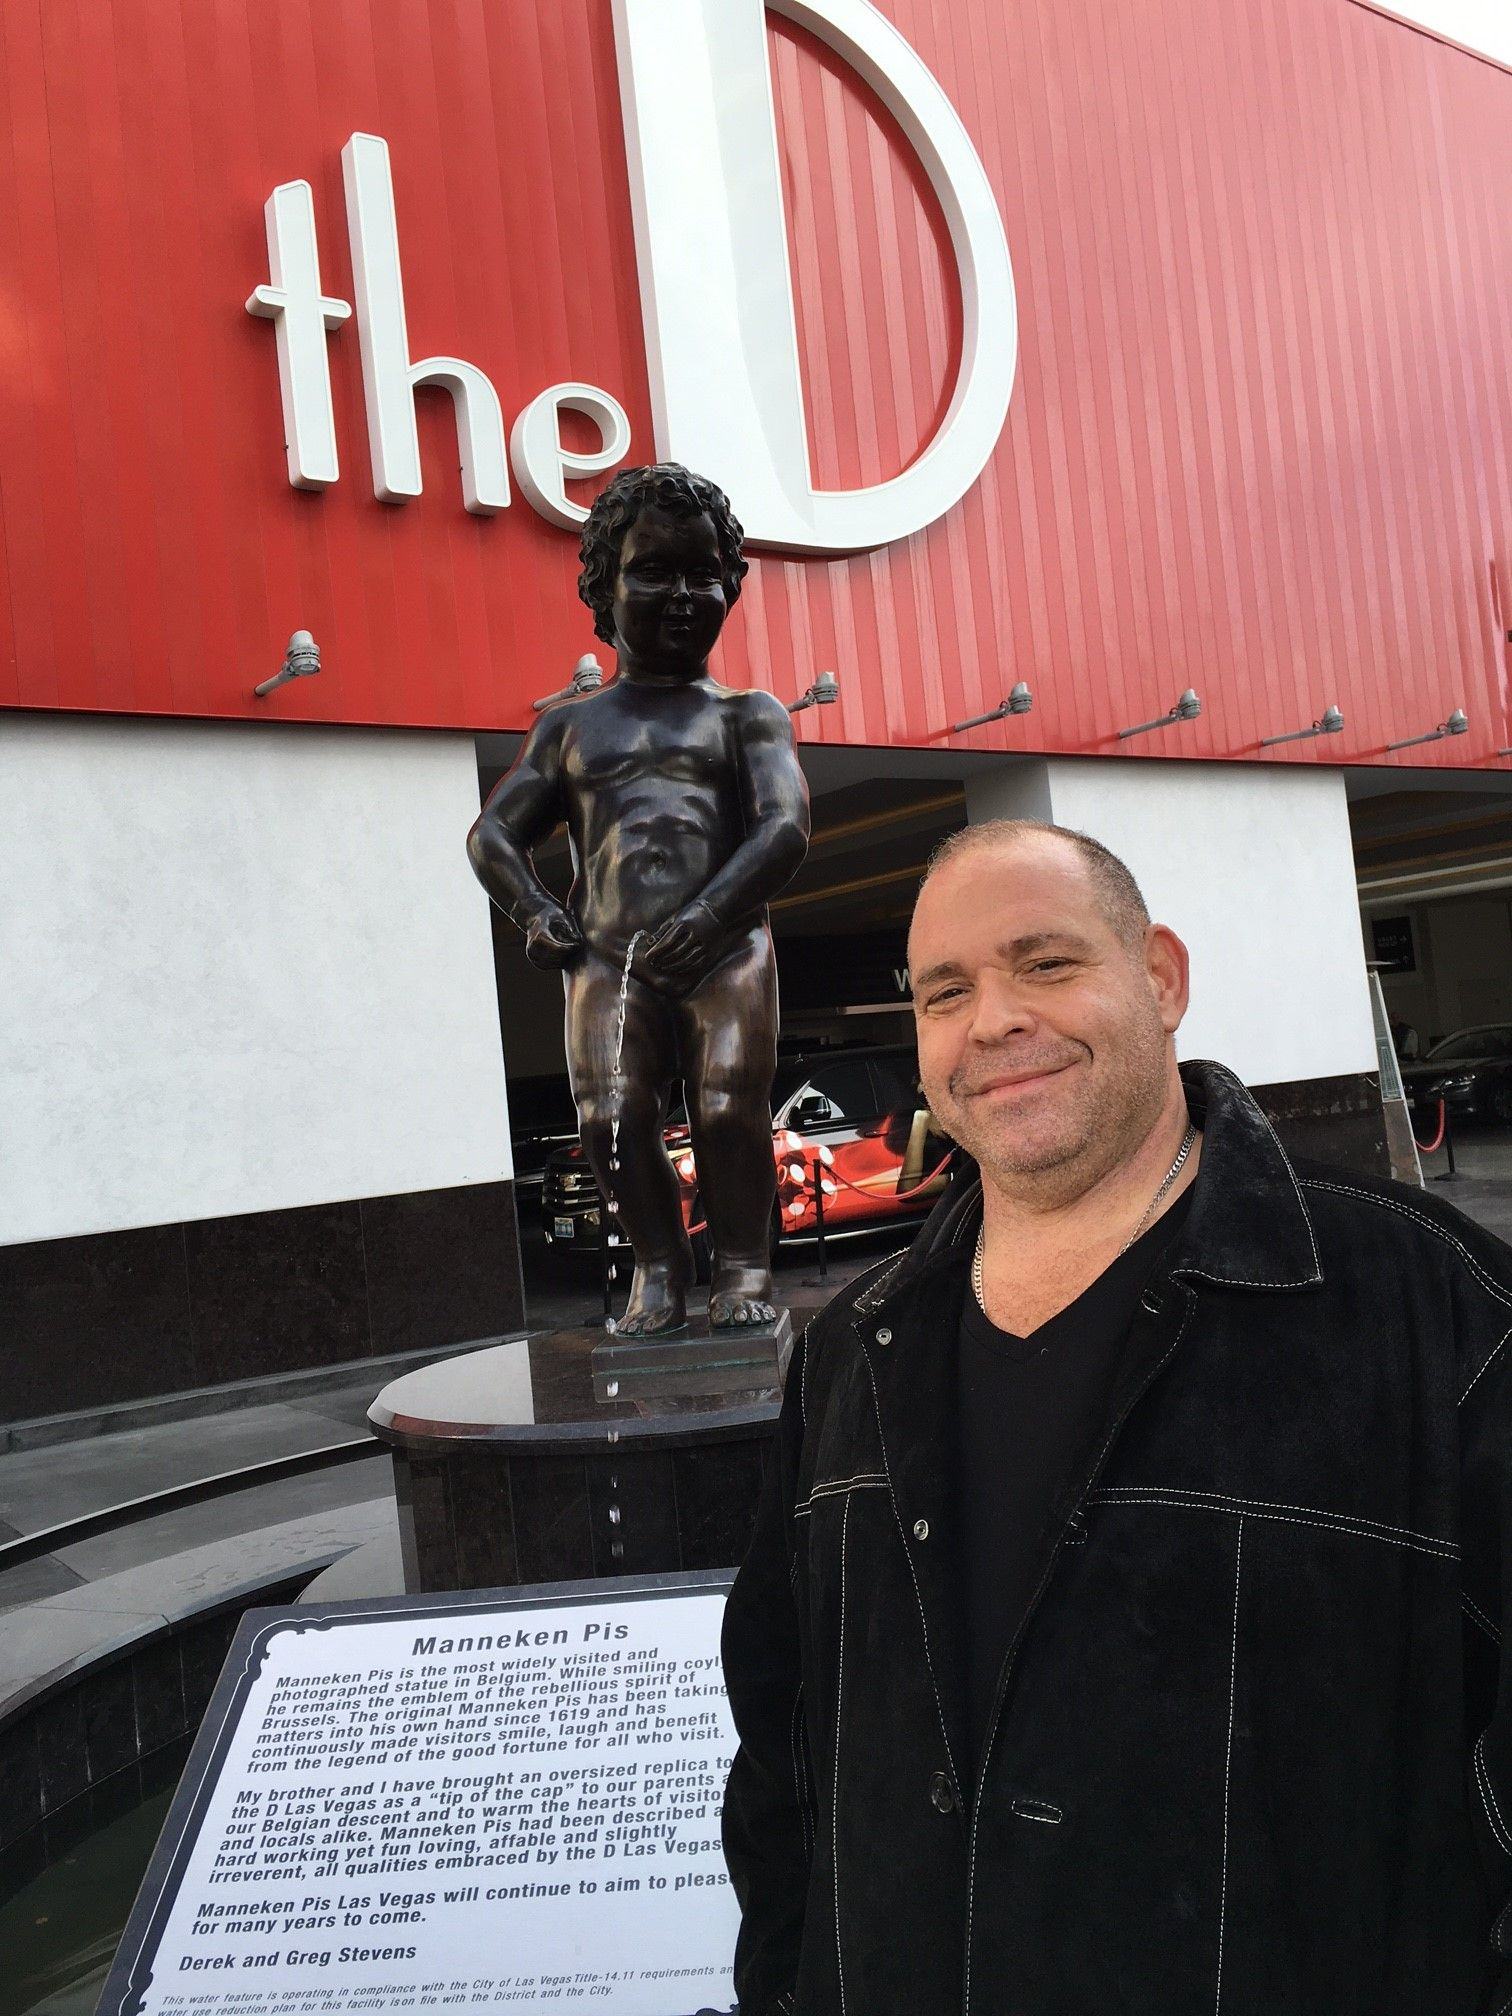 Greg Rikaart Nude within famous actor, louis lombardi, posing with famous nude statue